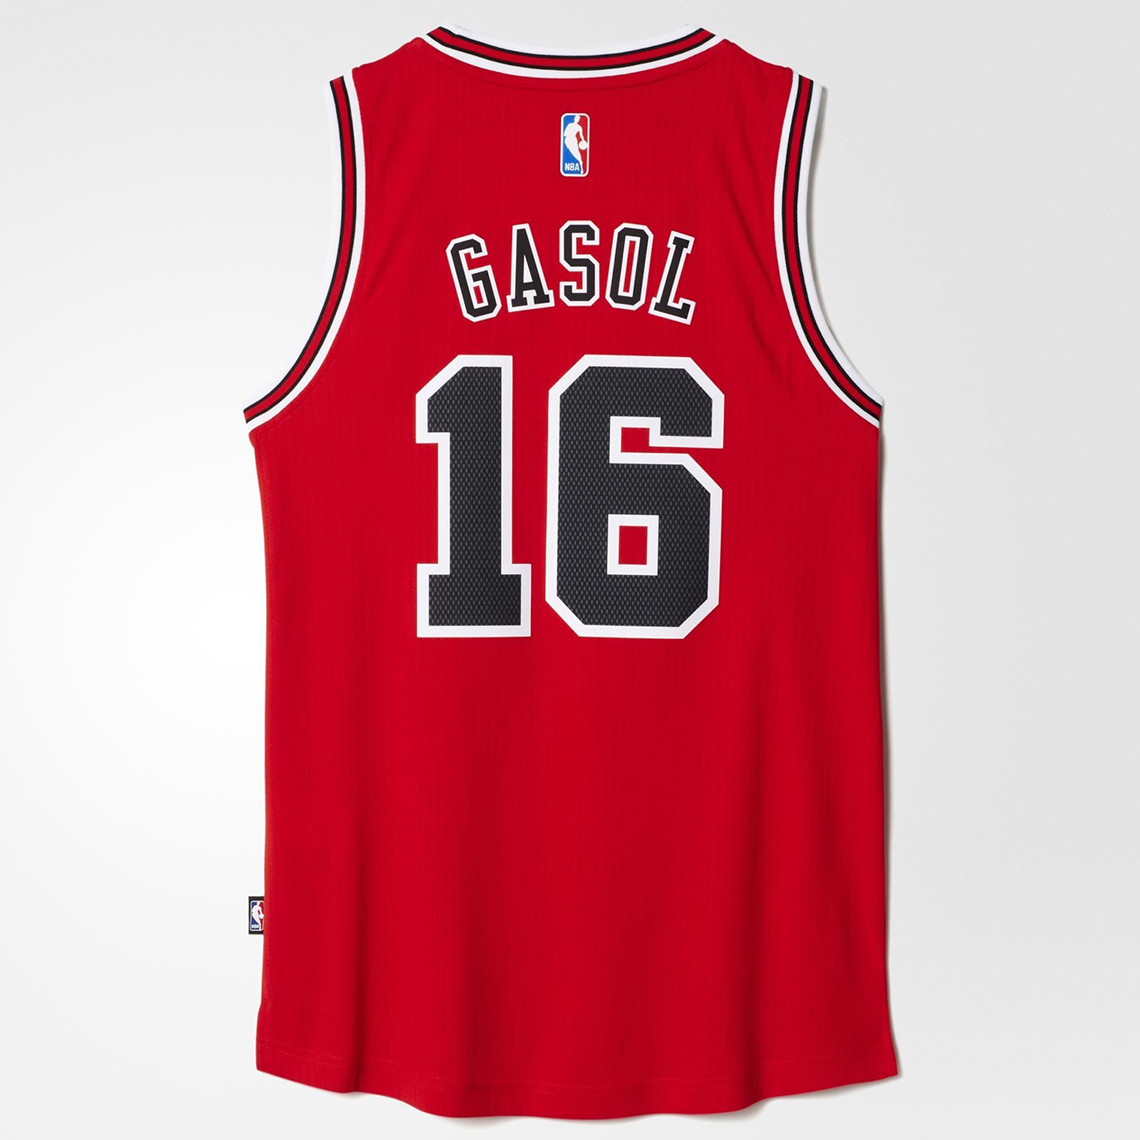 Product Description. Discipline, dedication and desire were the hallmarks of the Chicago Bulls of the s. Capturing six (6) NBA titles between and , the Bulls were the most dominant and arguably the greatest basketball team ever assembled.